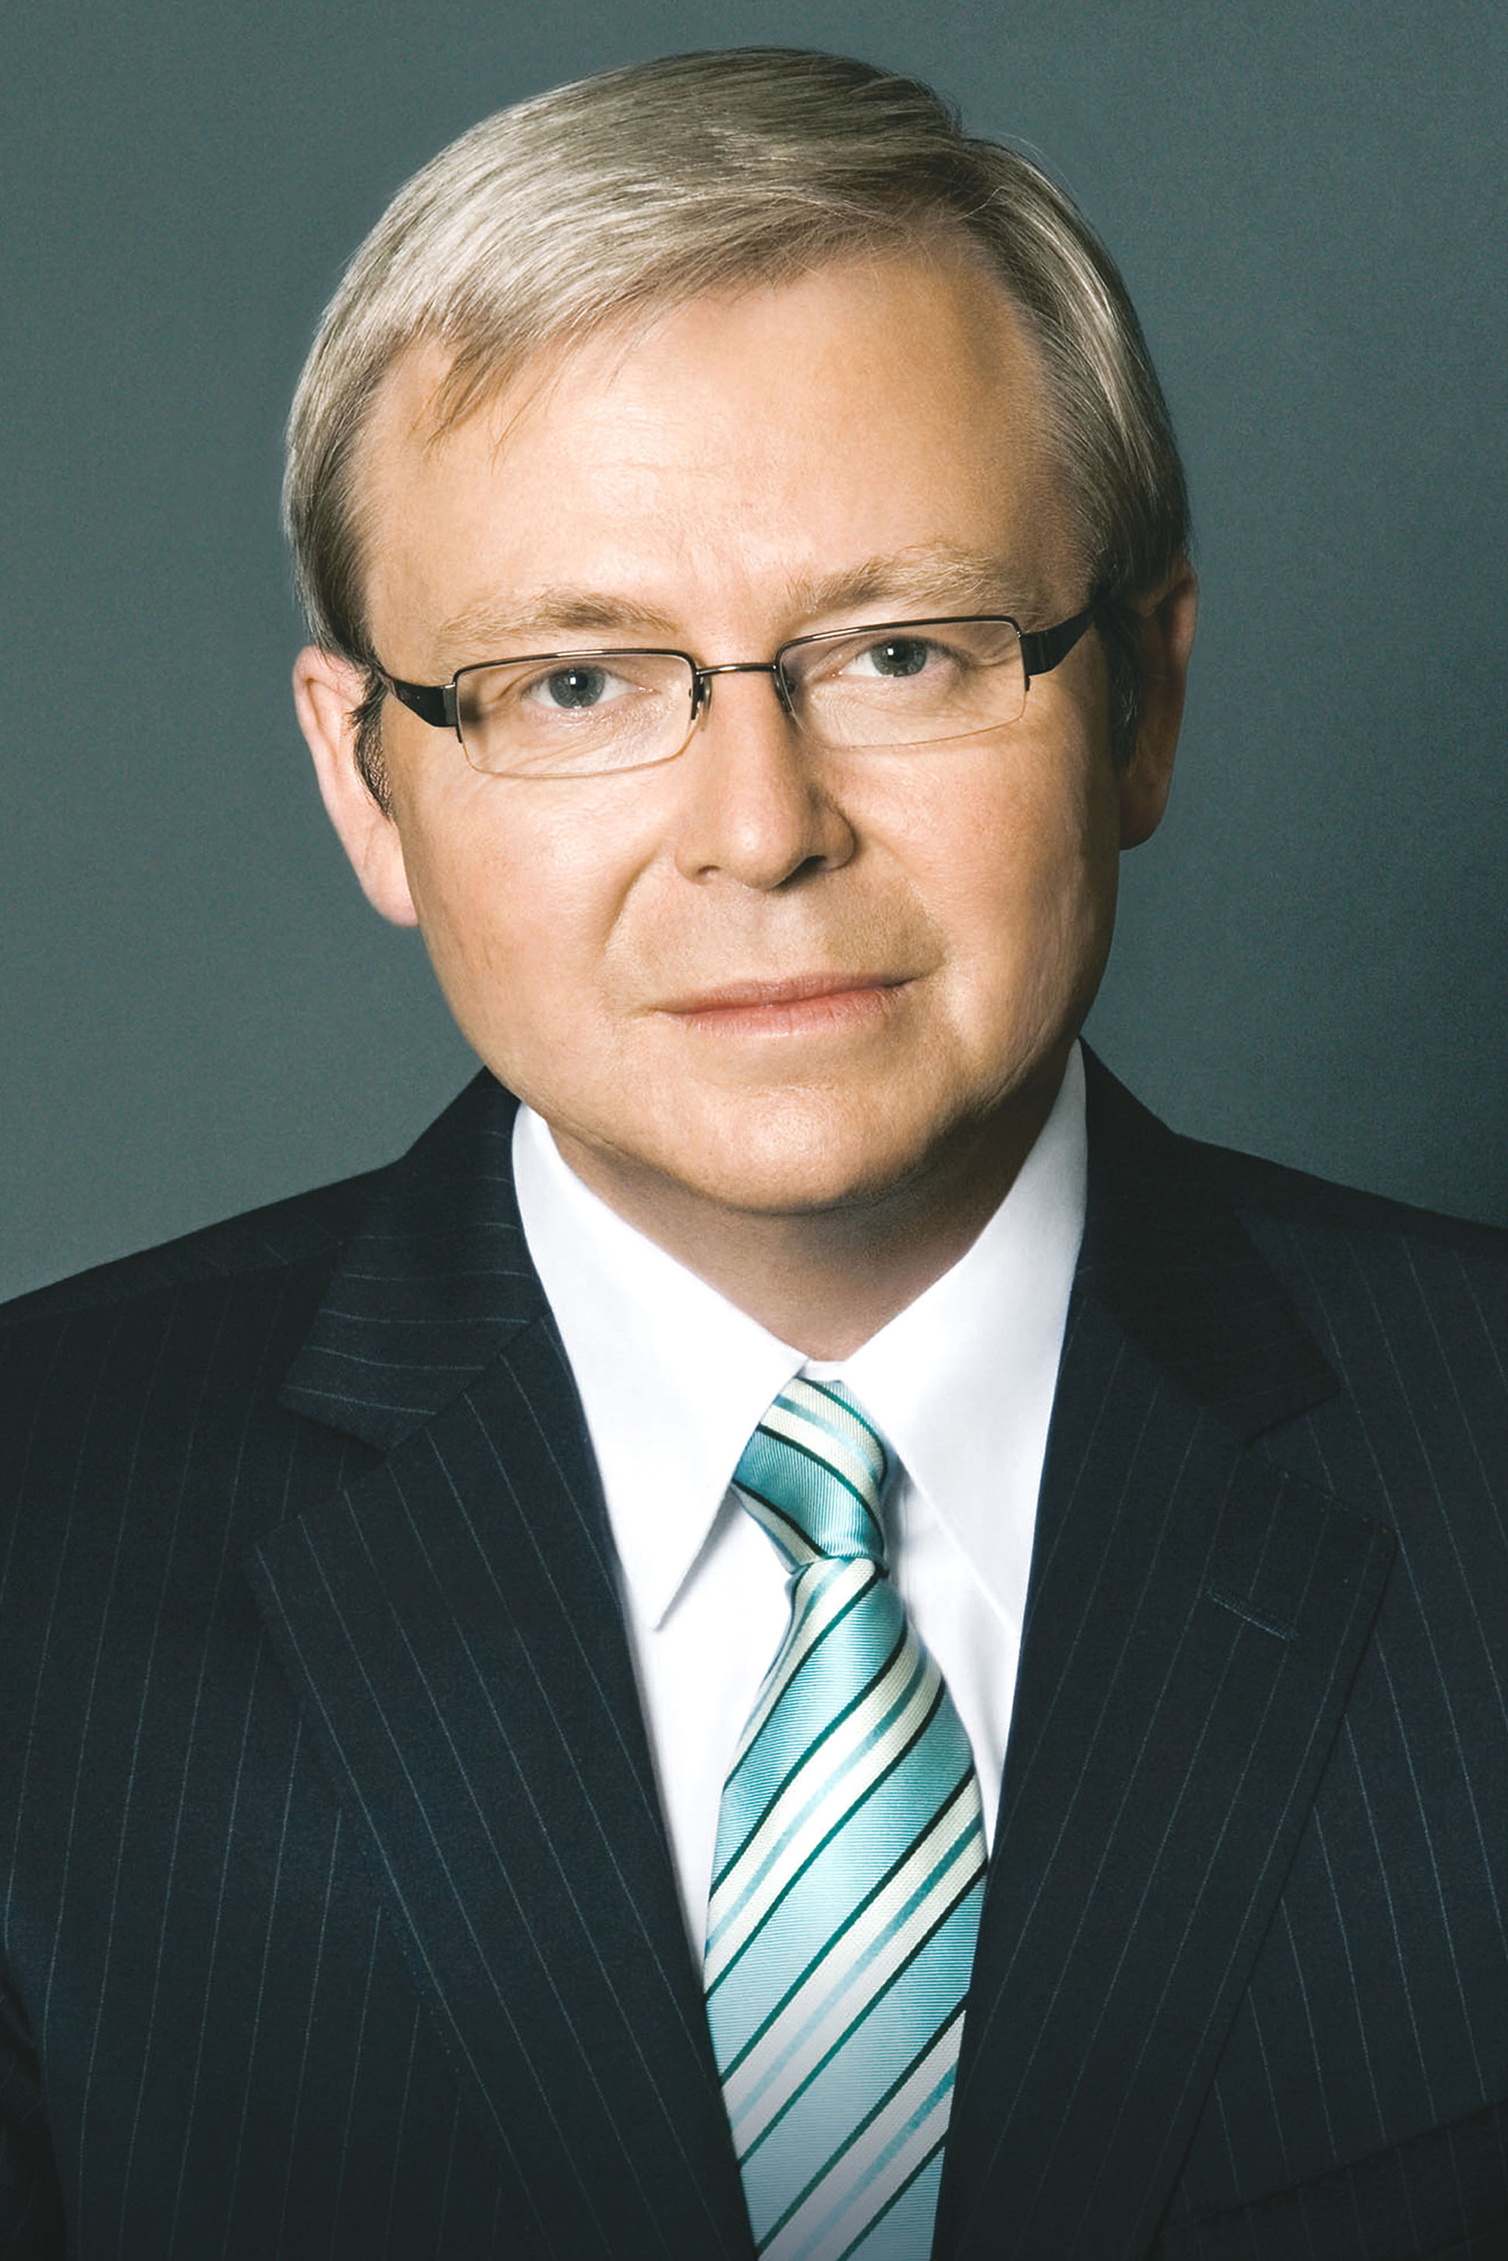 Message from The Honourable Kevin Rudd Prime Minister of Australia